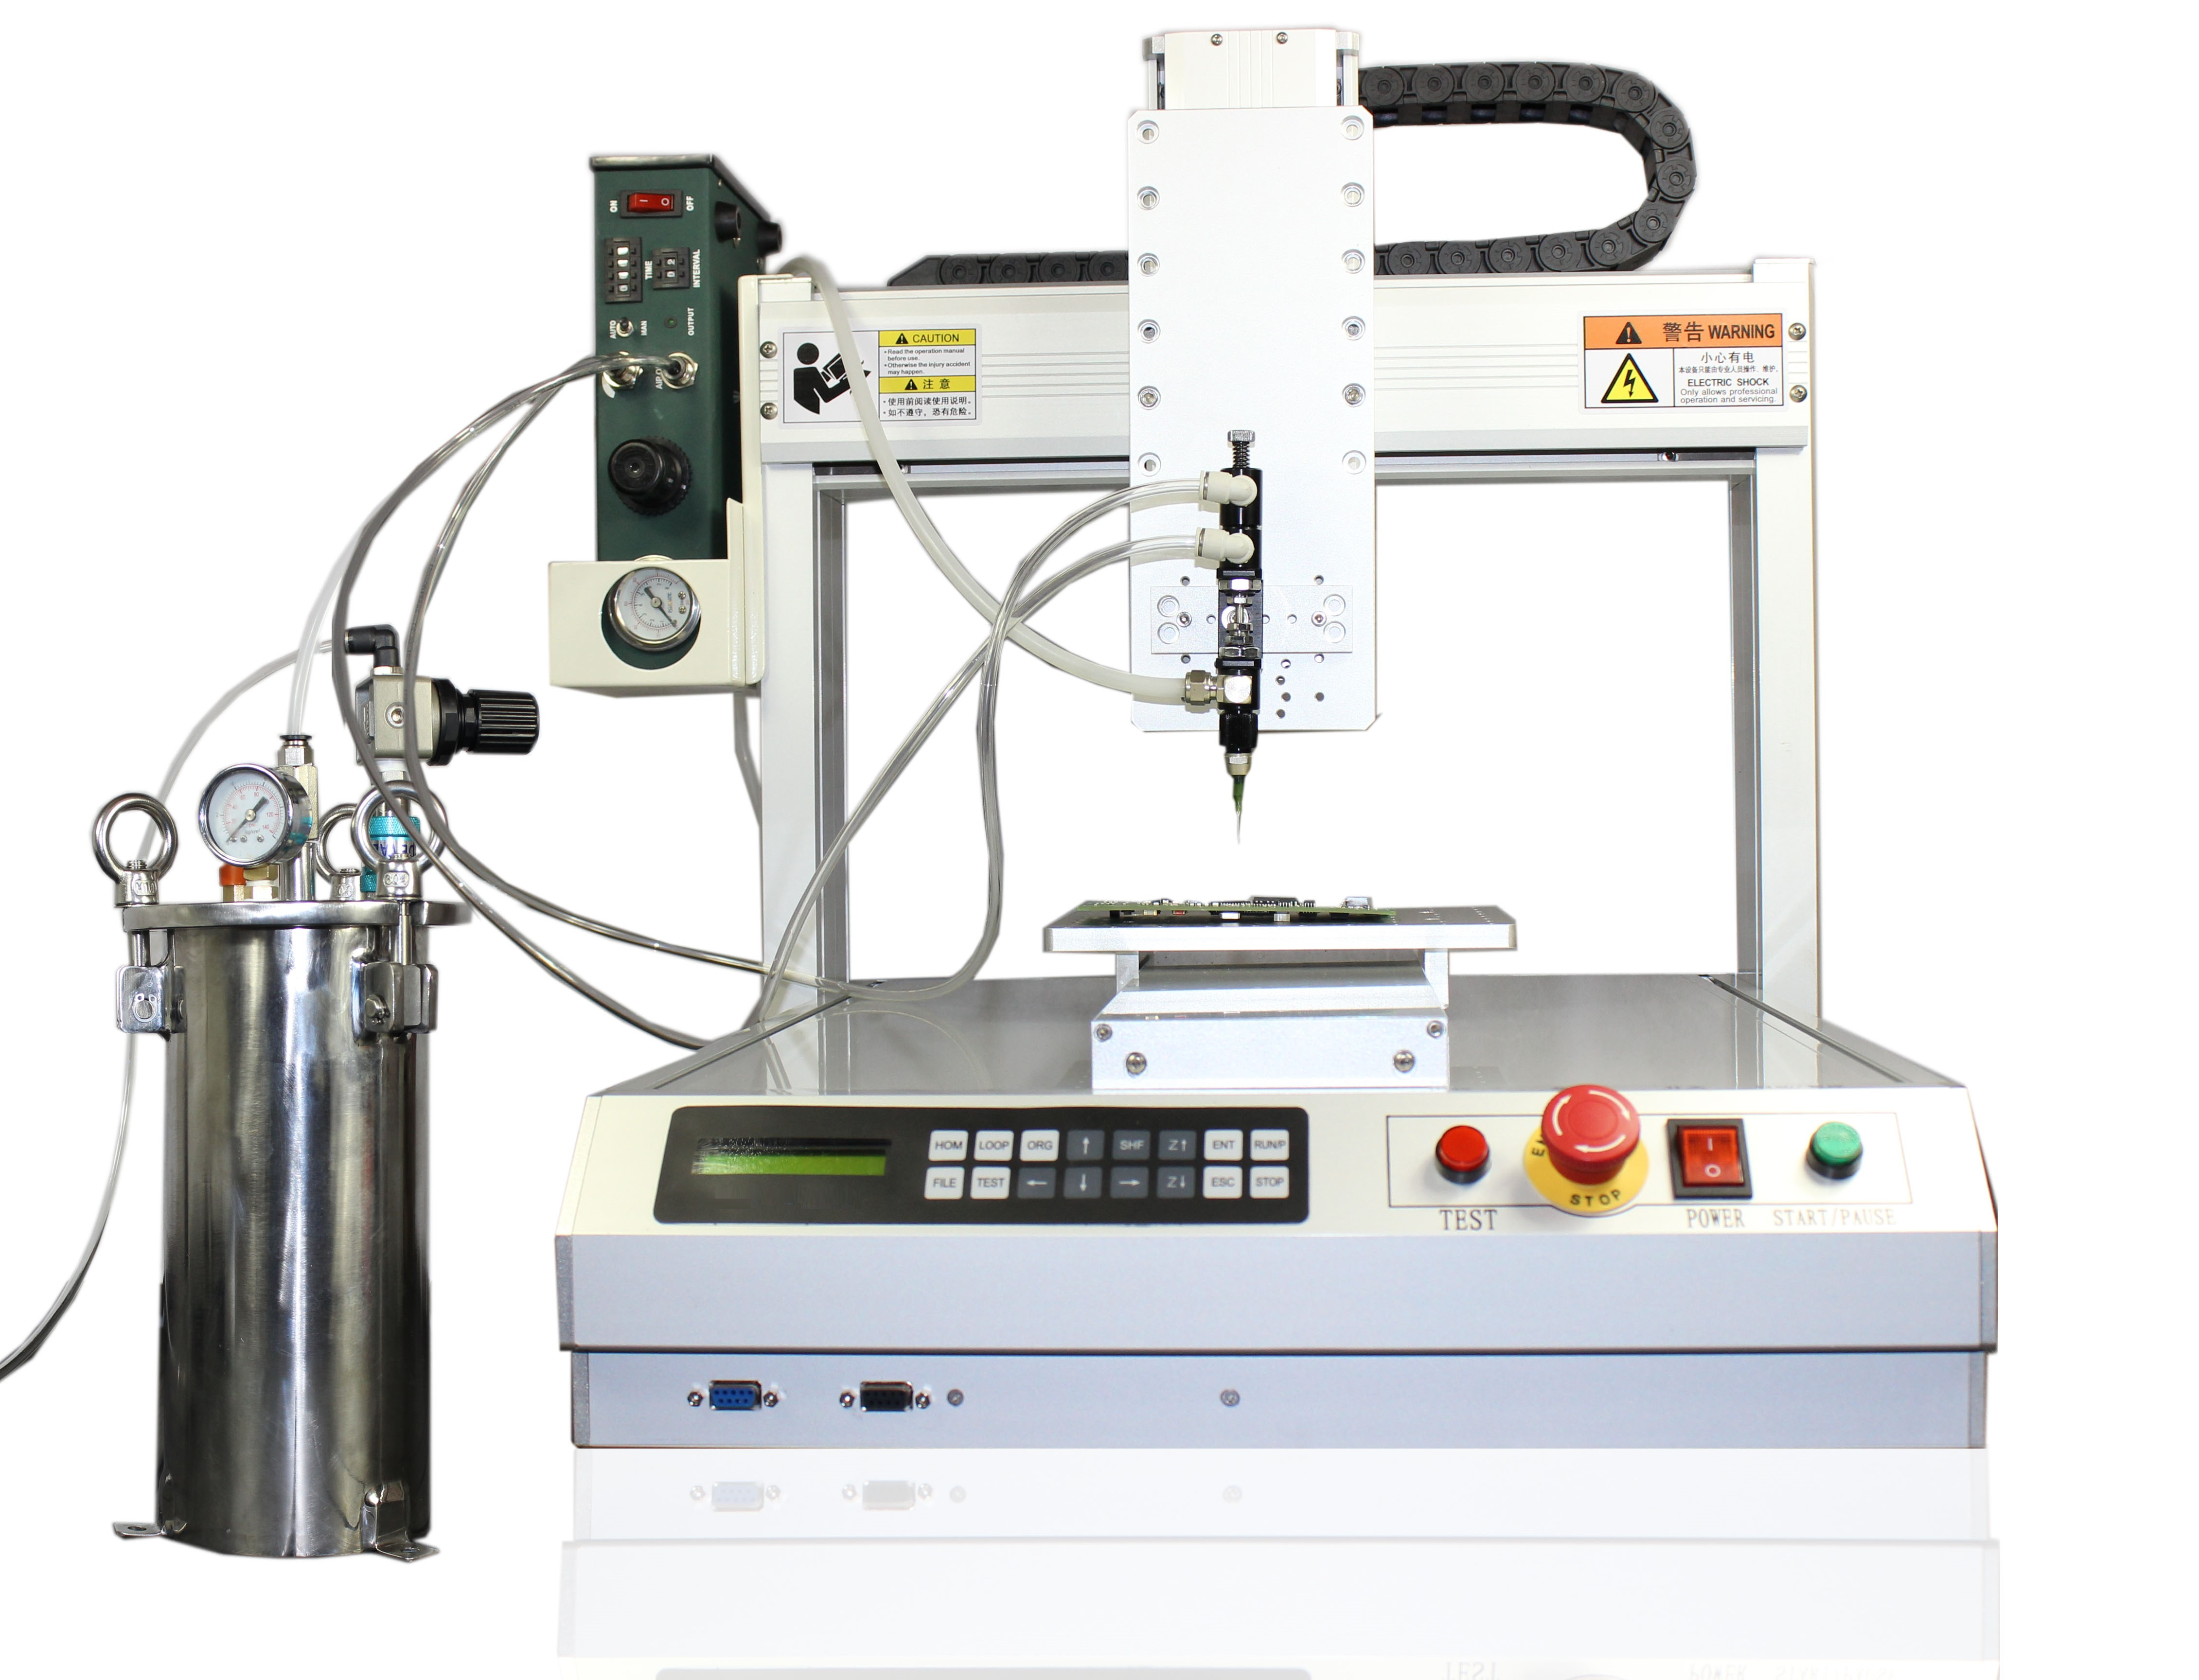 AIE_3_4_Axis_Robots_With_Pressure_Tank_Precision_Valves_Dispensing_For_Glues_Adhesives_Fluids